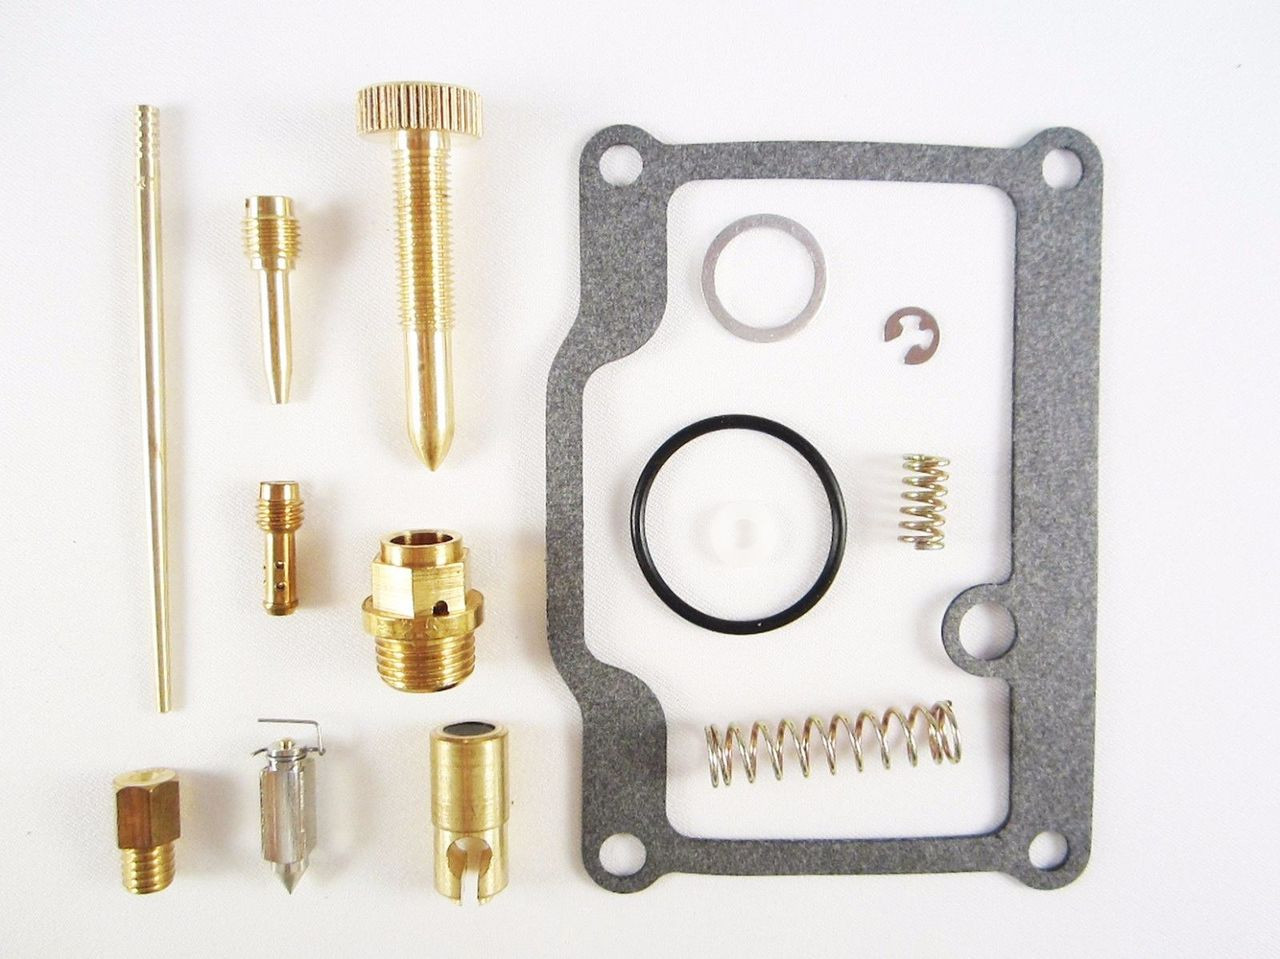 Carb Carburetor Repair Kit Polaris Sportsman 600 4x4 2003-2005